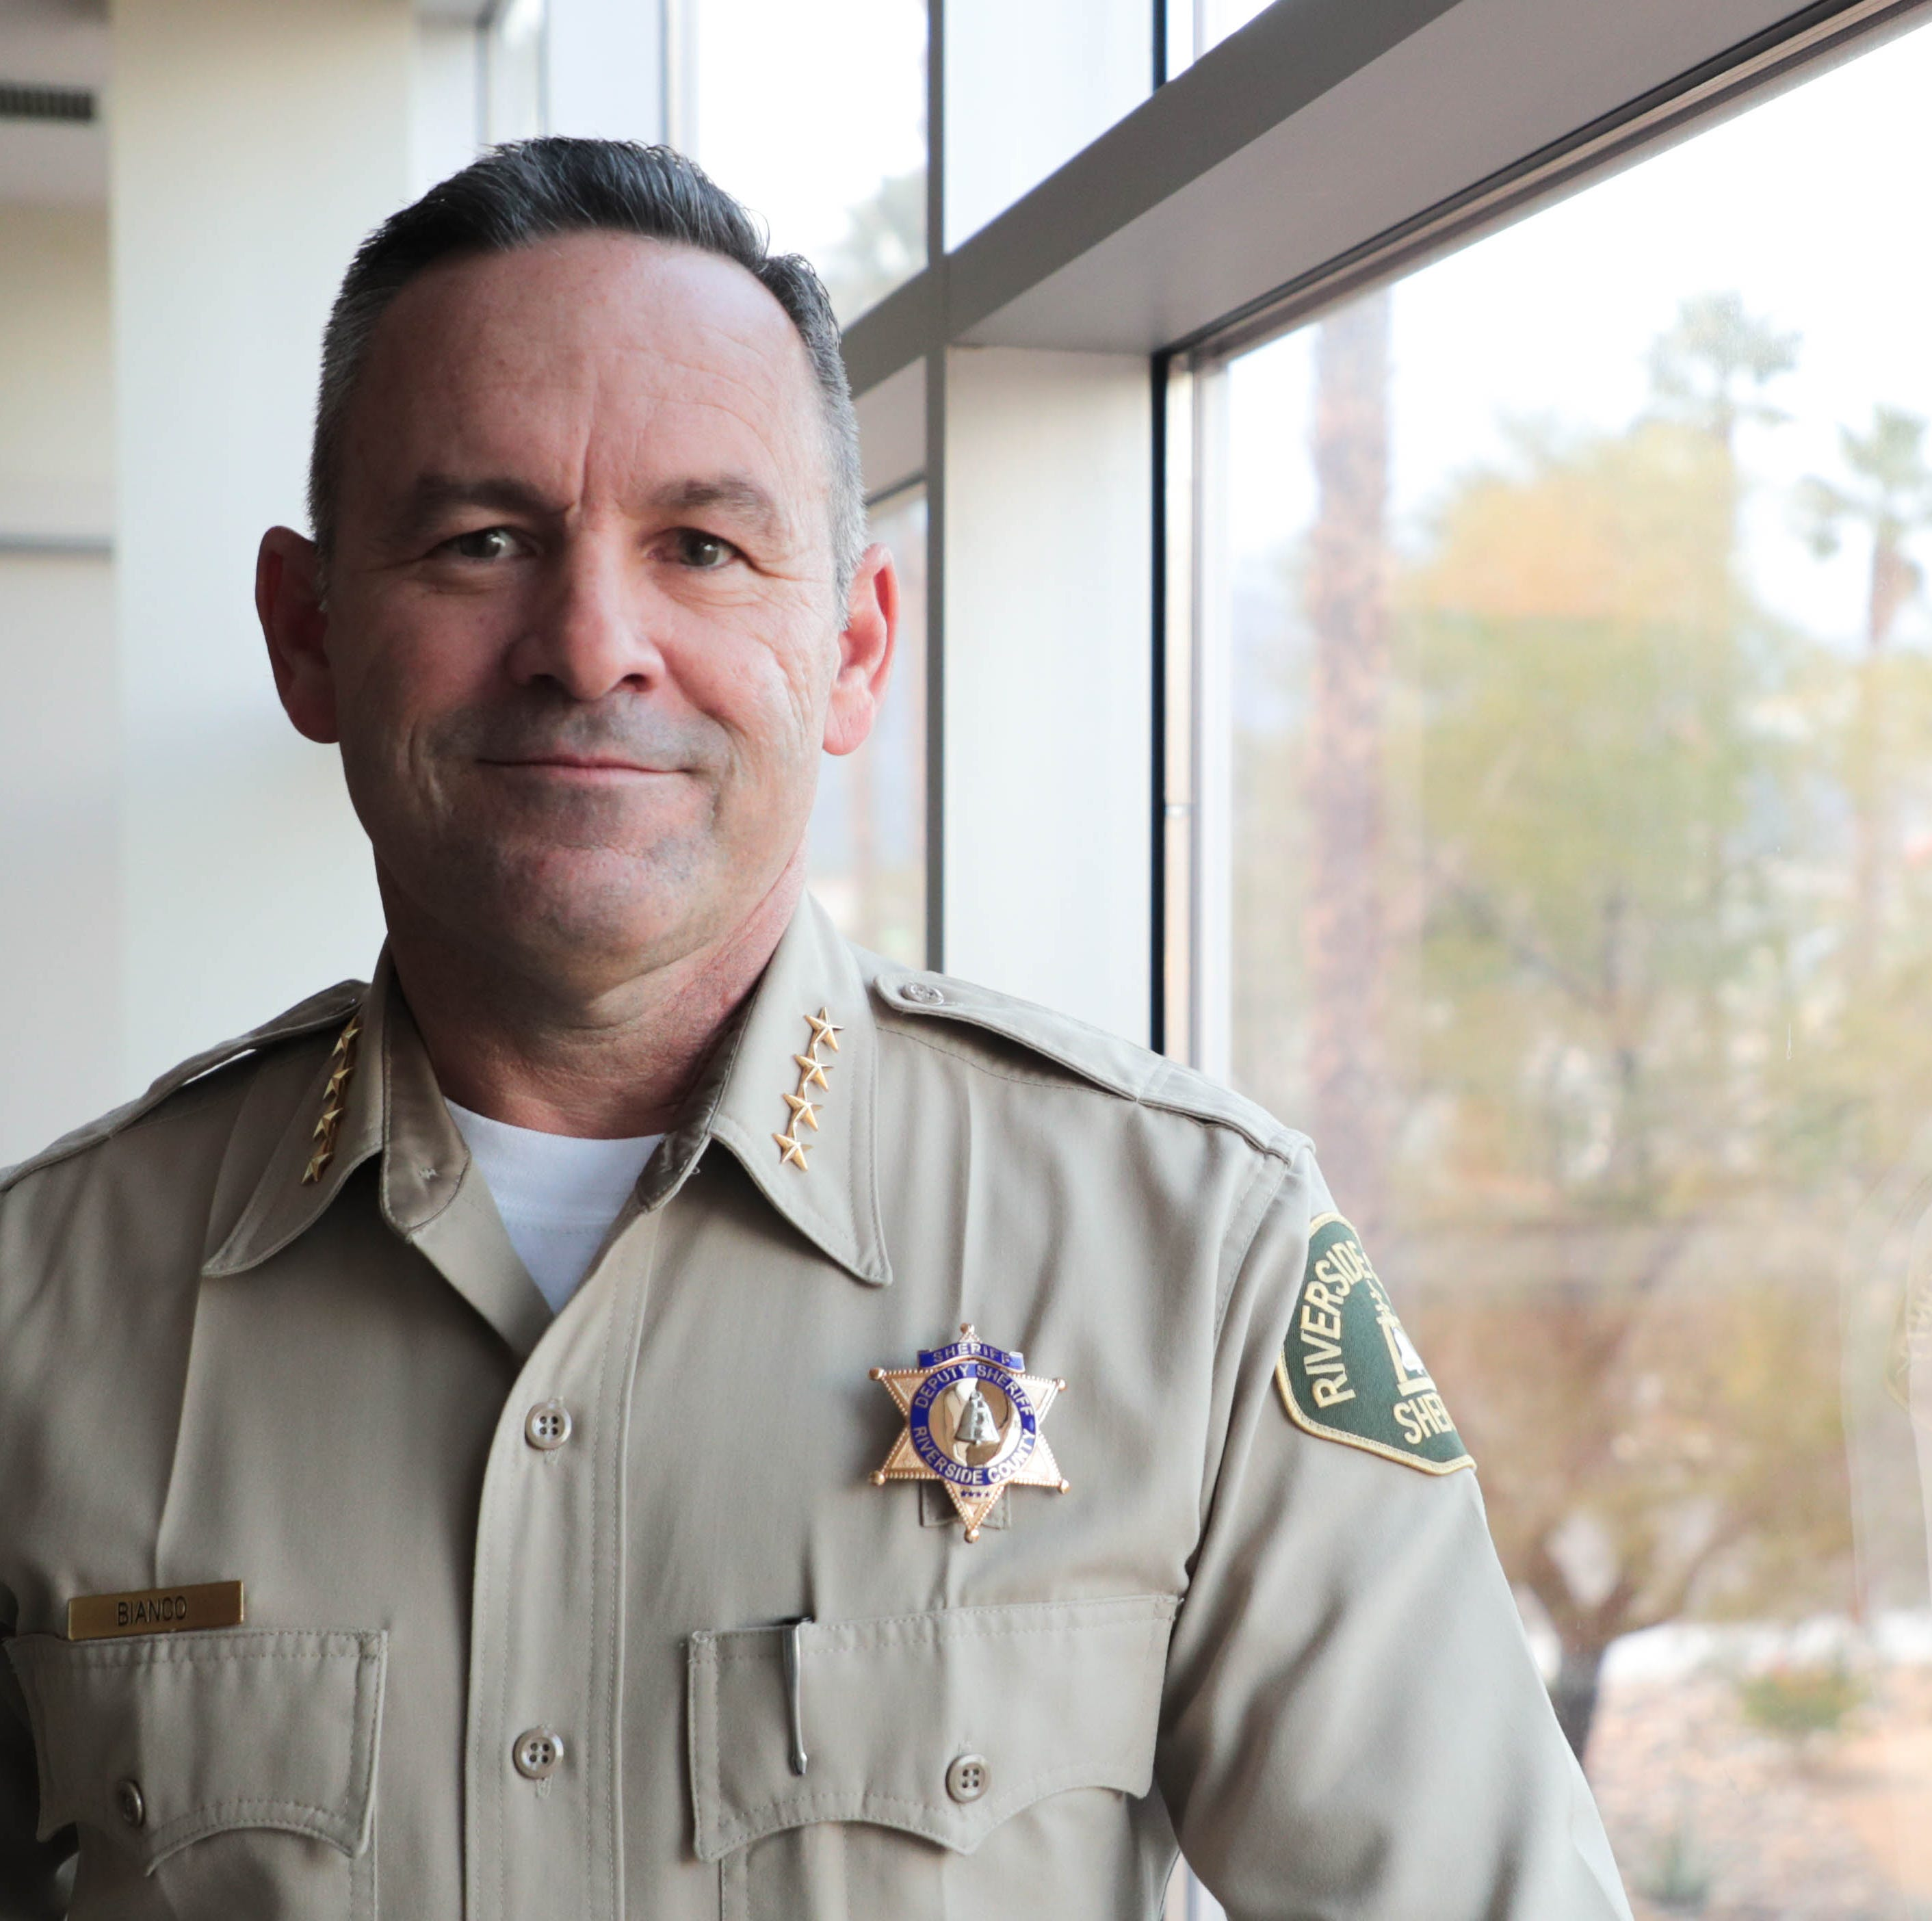 Riverside Sheriff Chad Bianco proposes contract rate increase, despite earlier promises